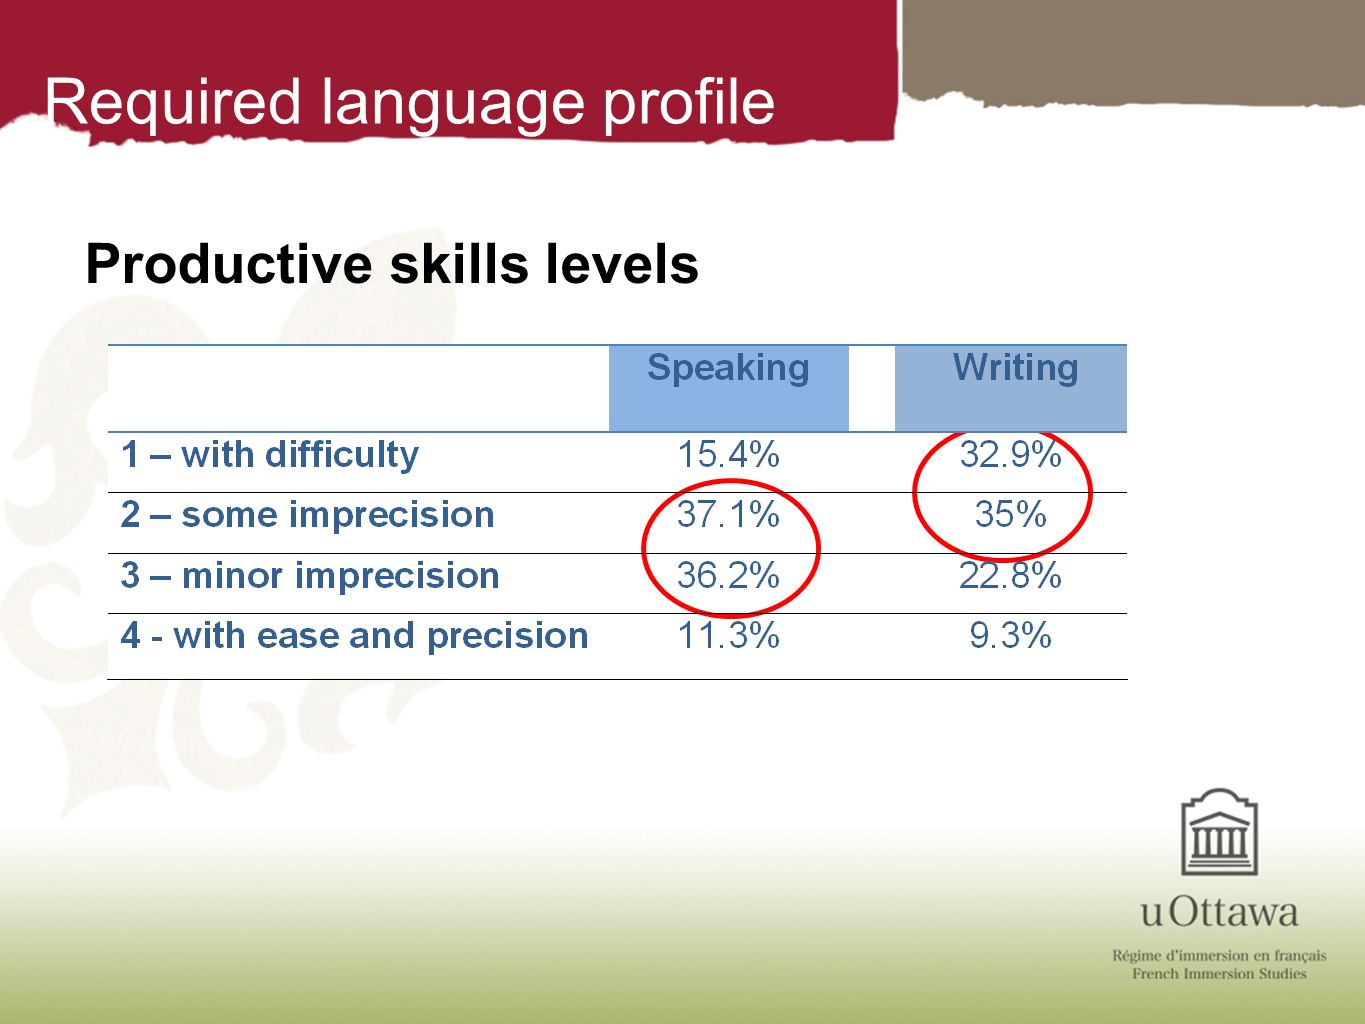 Required language profile